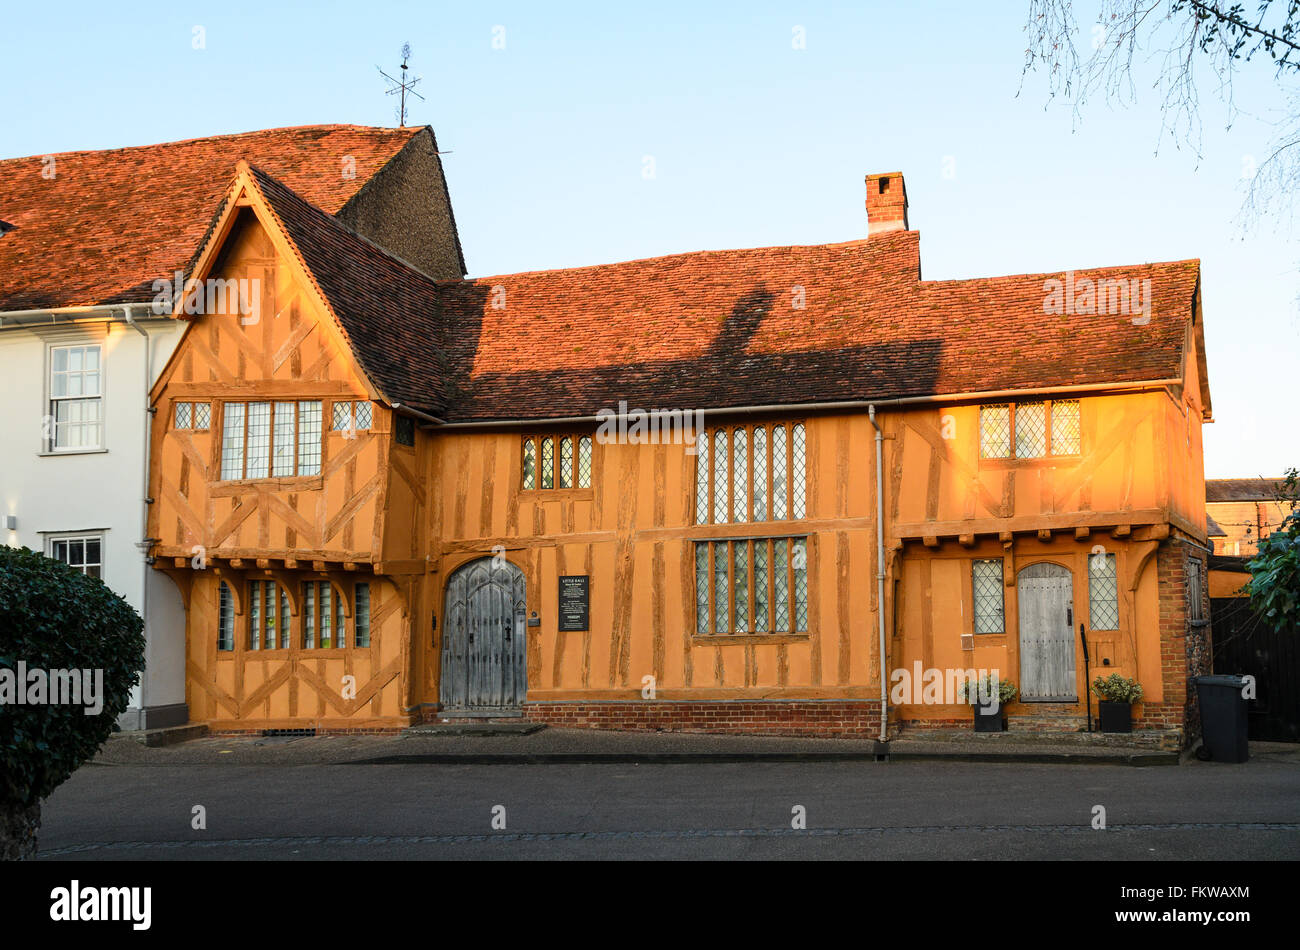 The 14th Century Little Hall at Lavenham, Suffolk, England, United Kingdom. Stock Photo